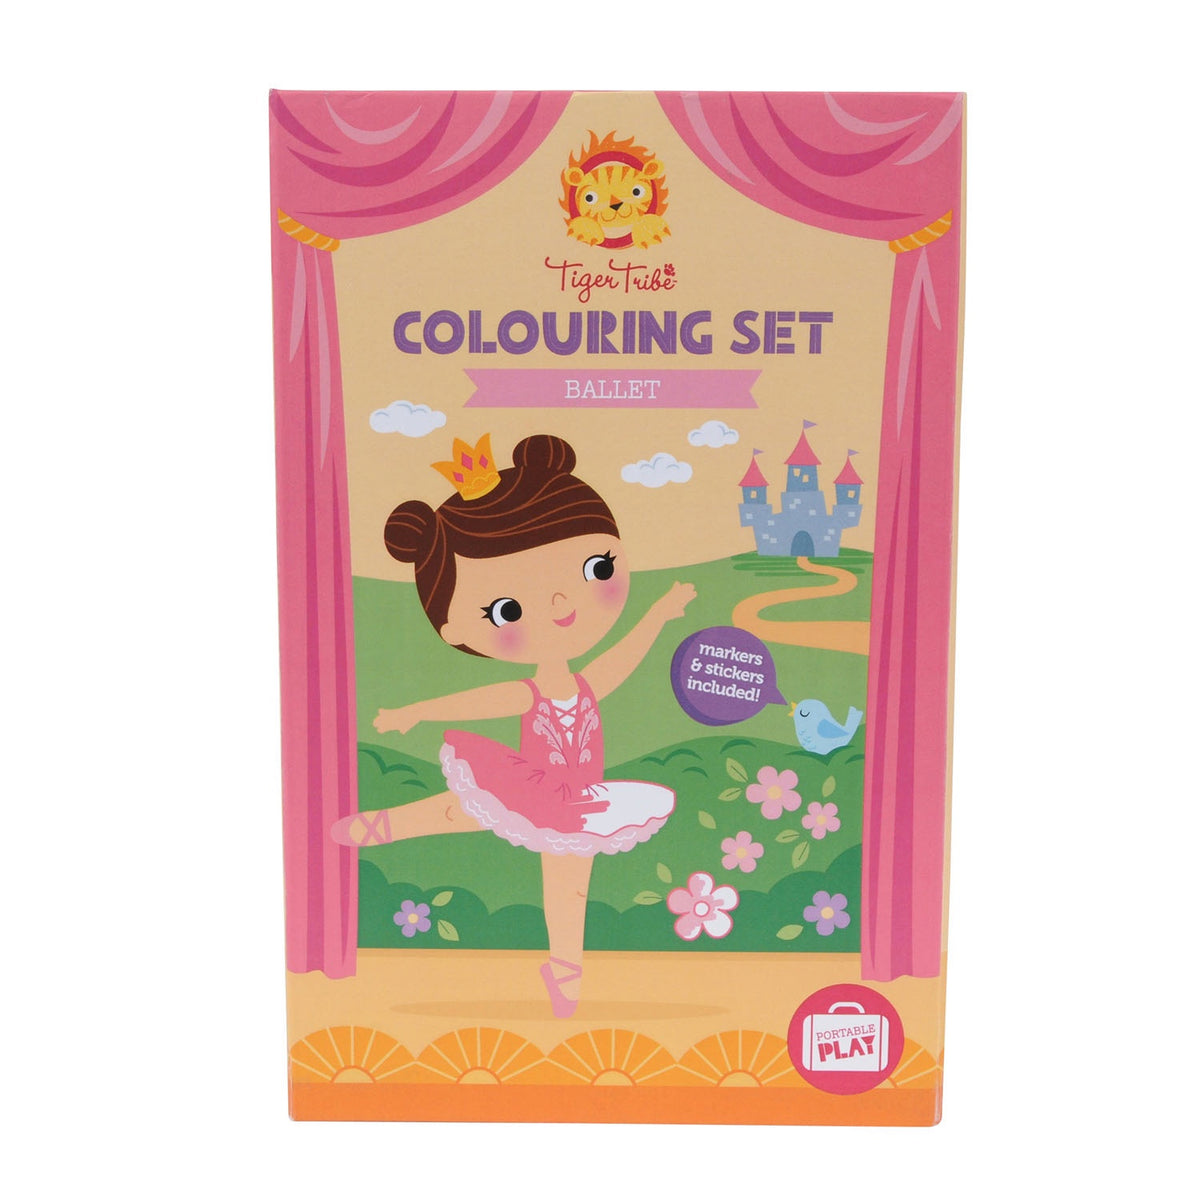 Tiger Tribe Colouring Set - Ballet